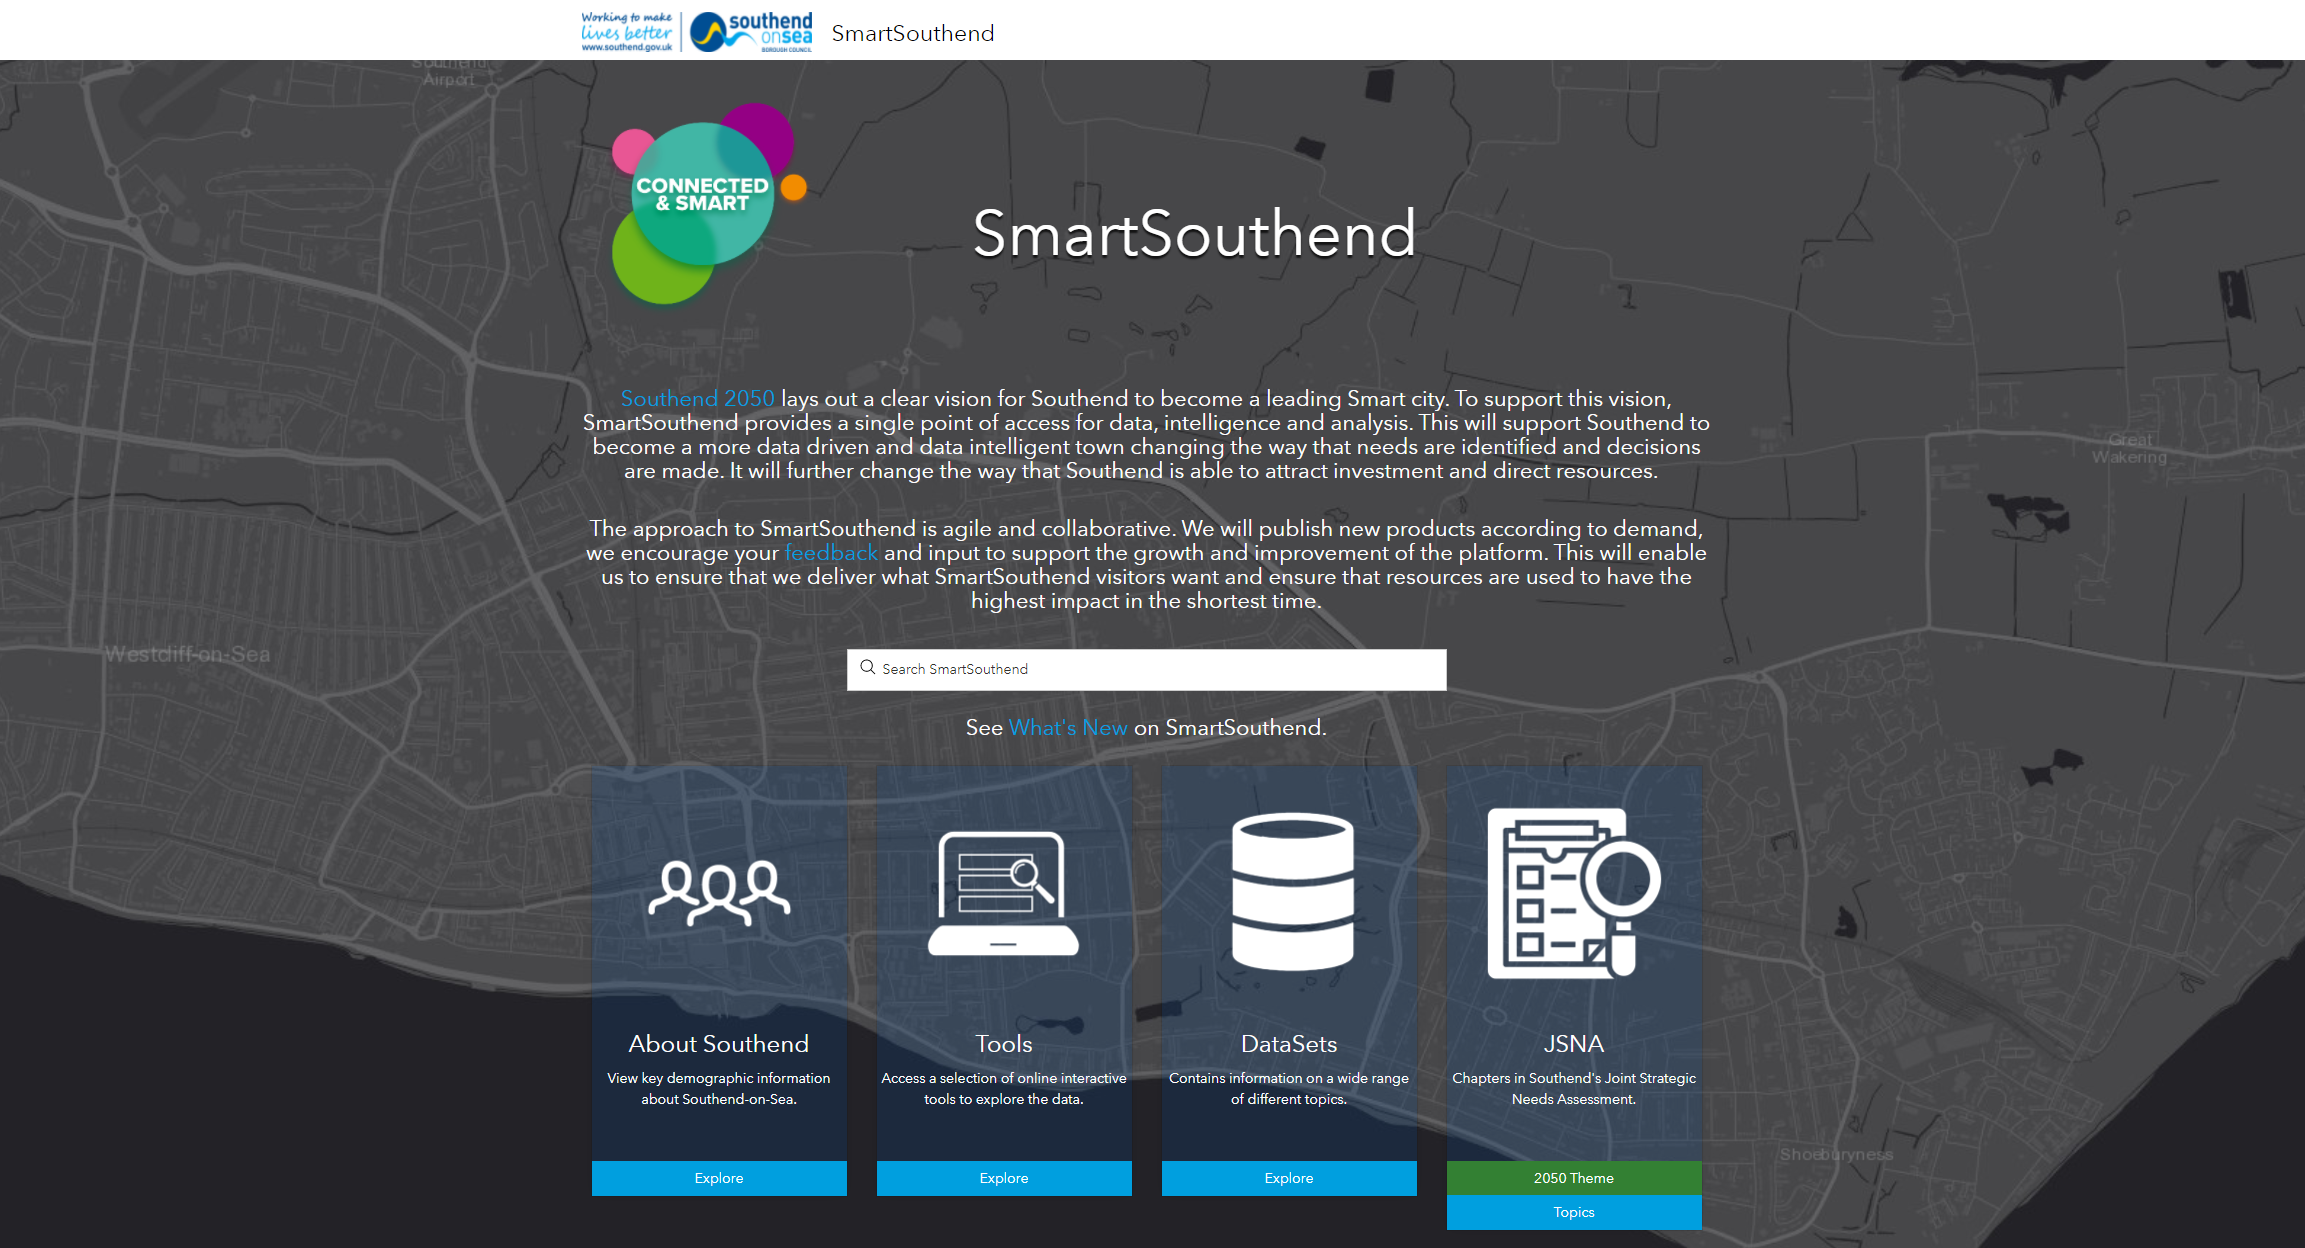 Example of an Open Data portal built with ArcGIS